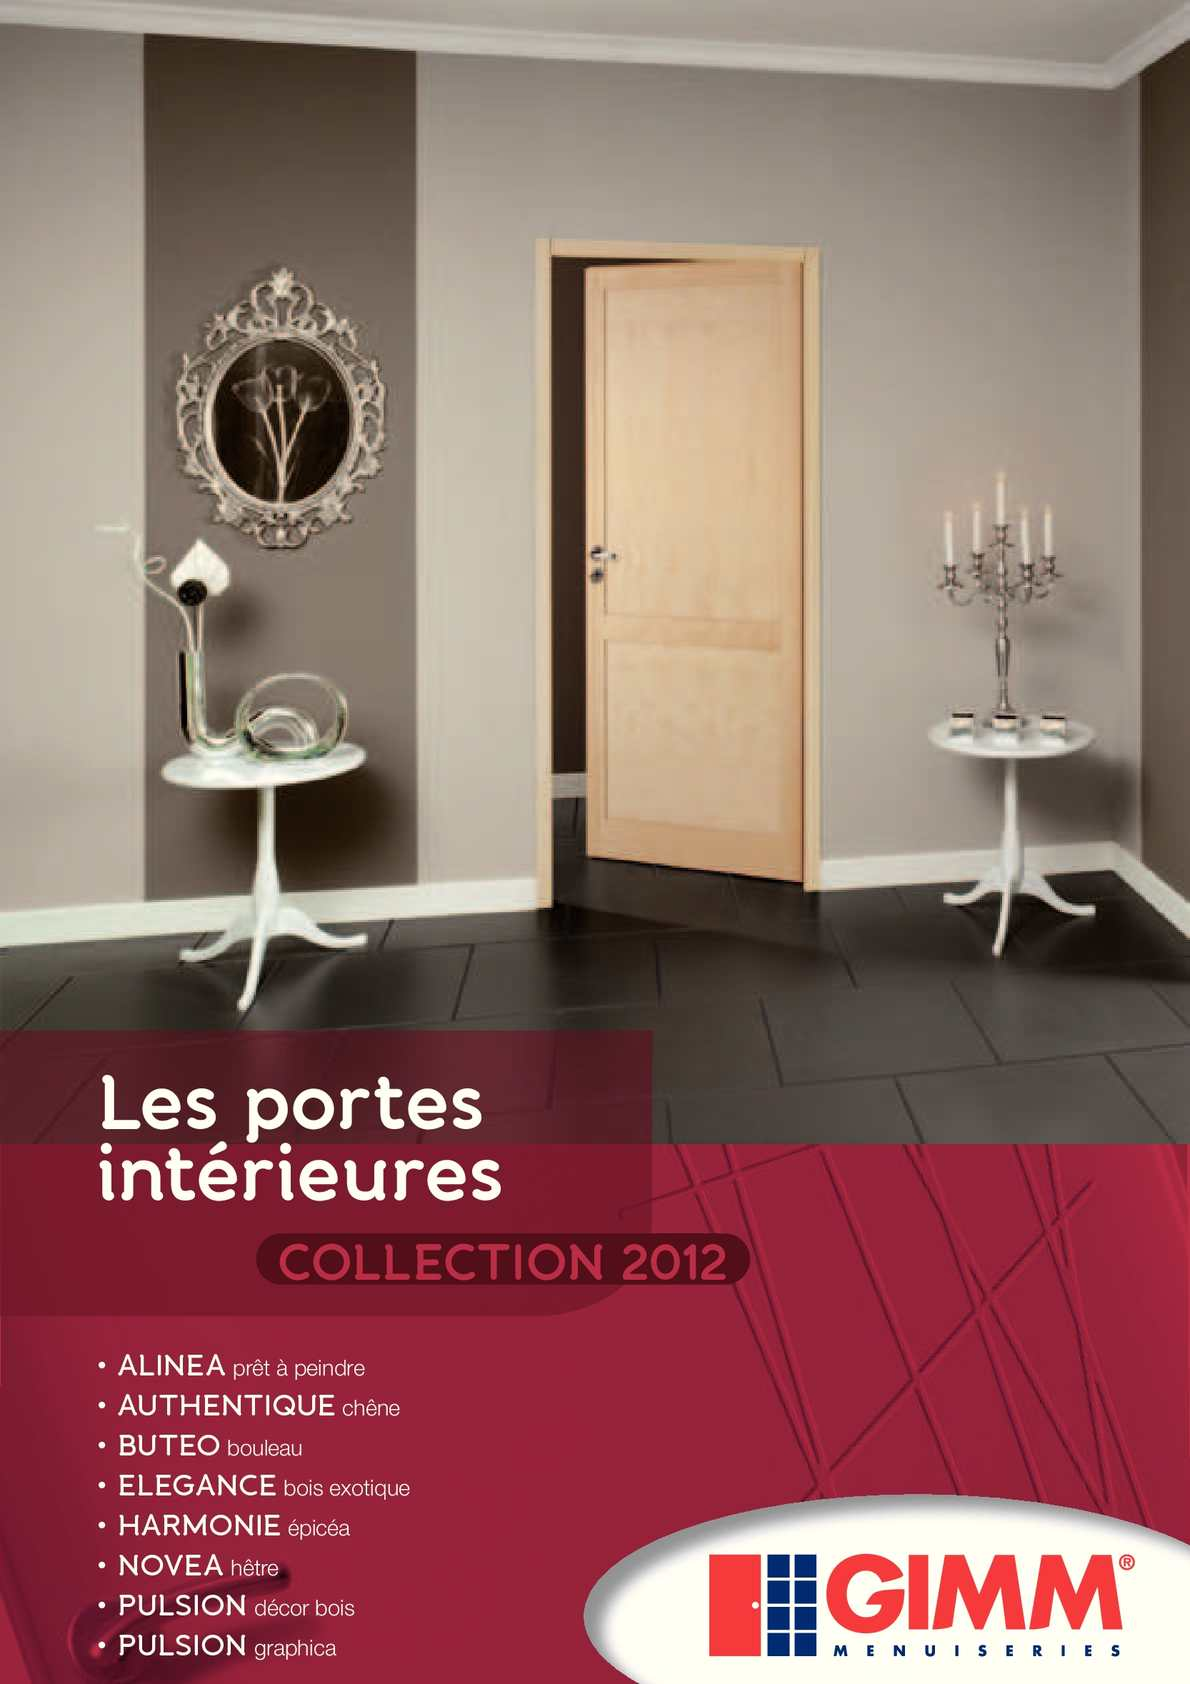 Calam o catalogue blocs portes gimm for Catalogue staff decor pdf